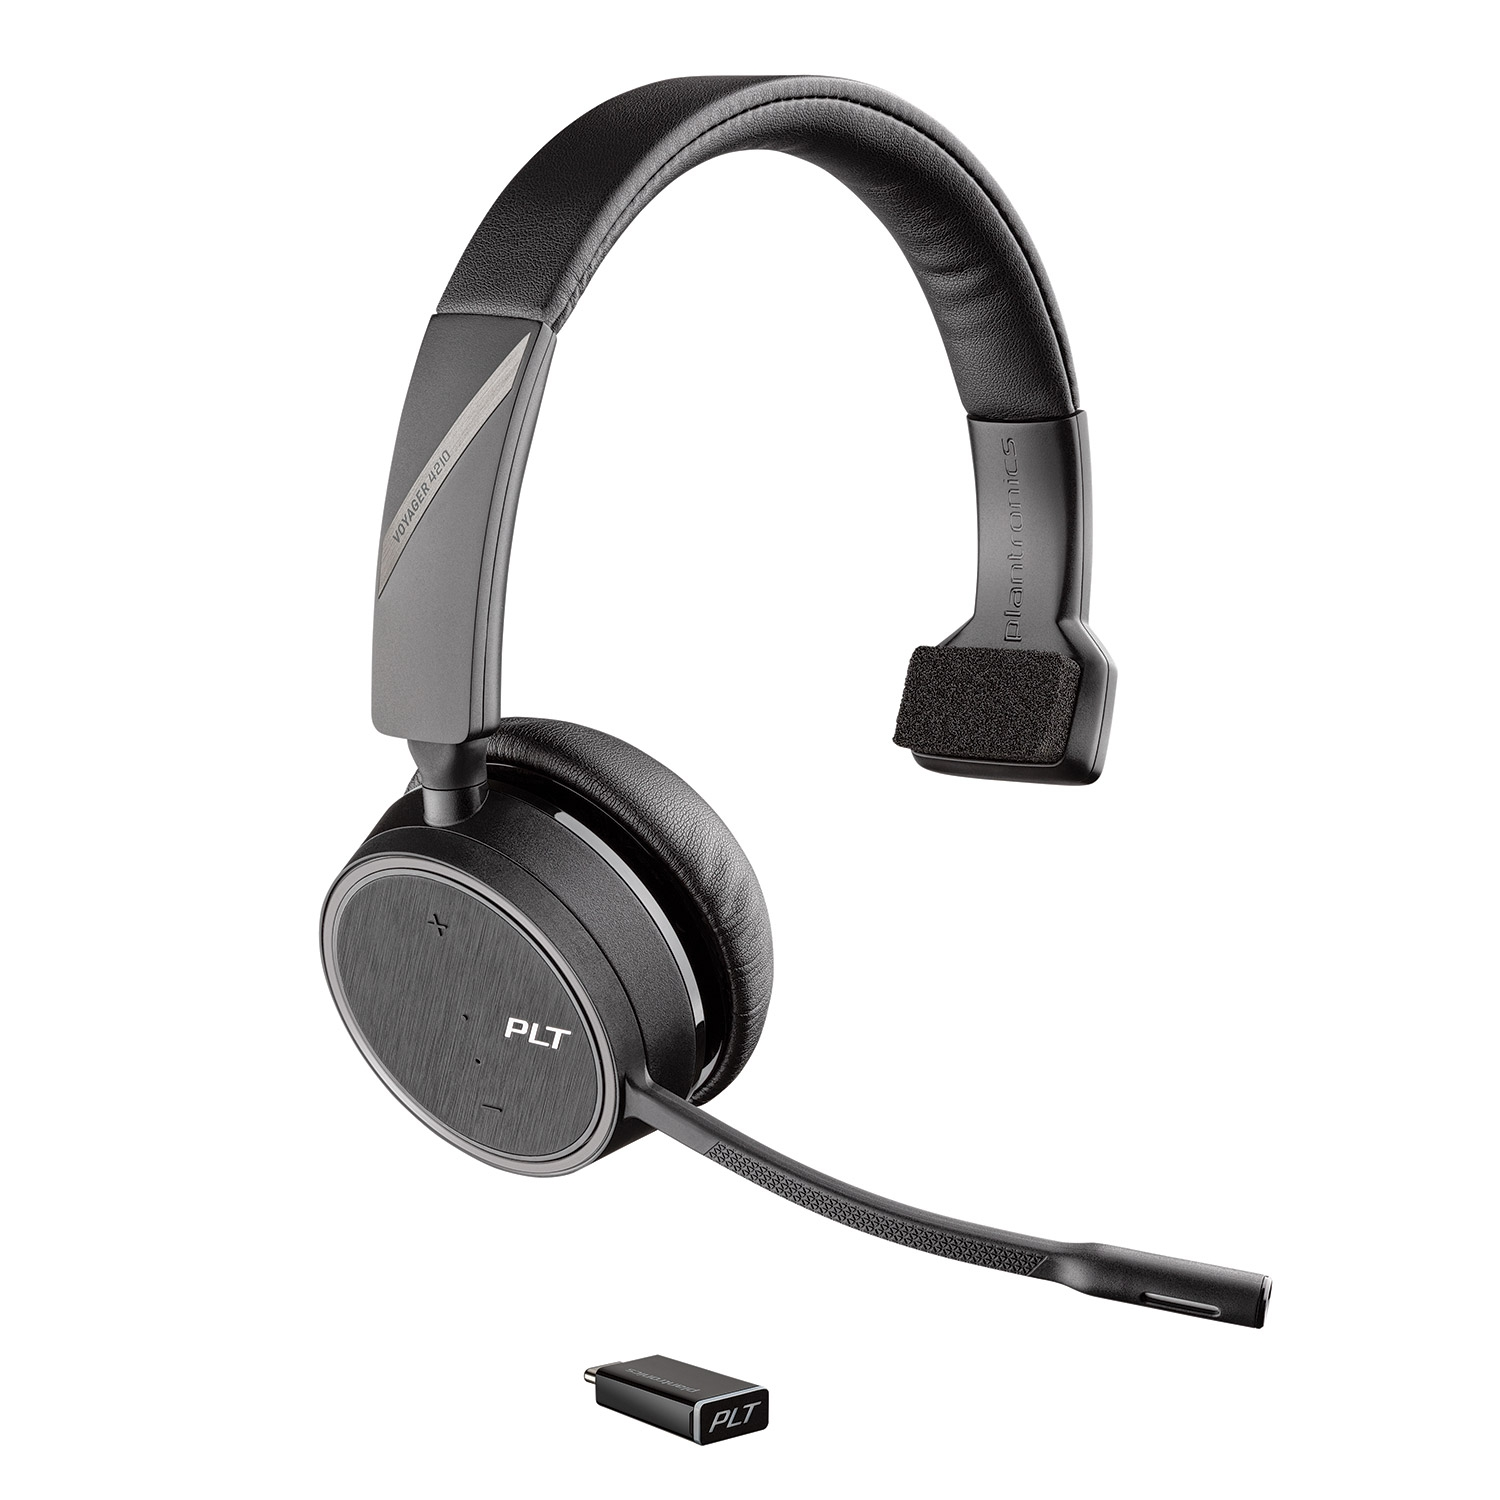 Image of Plantronics Voyager 4210 Mono Bluetooth Headset with USB-C Dongle